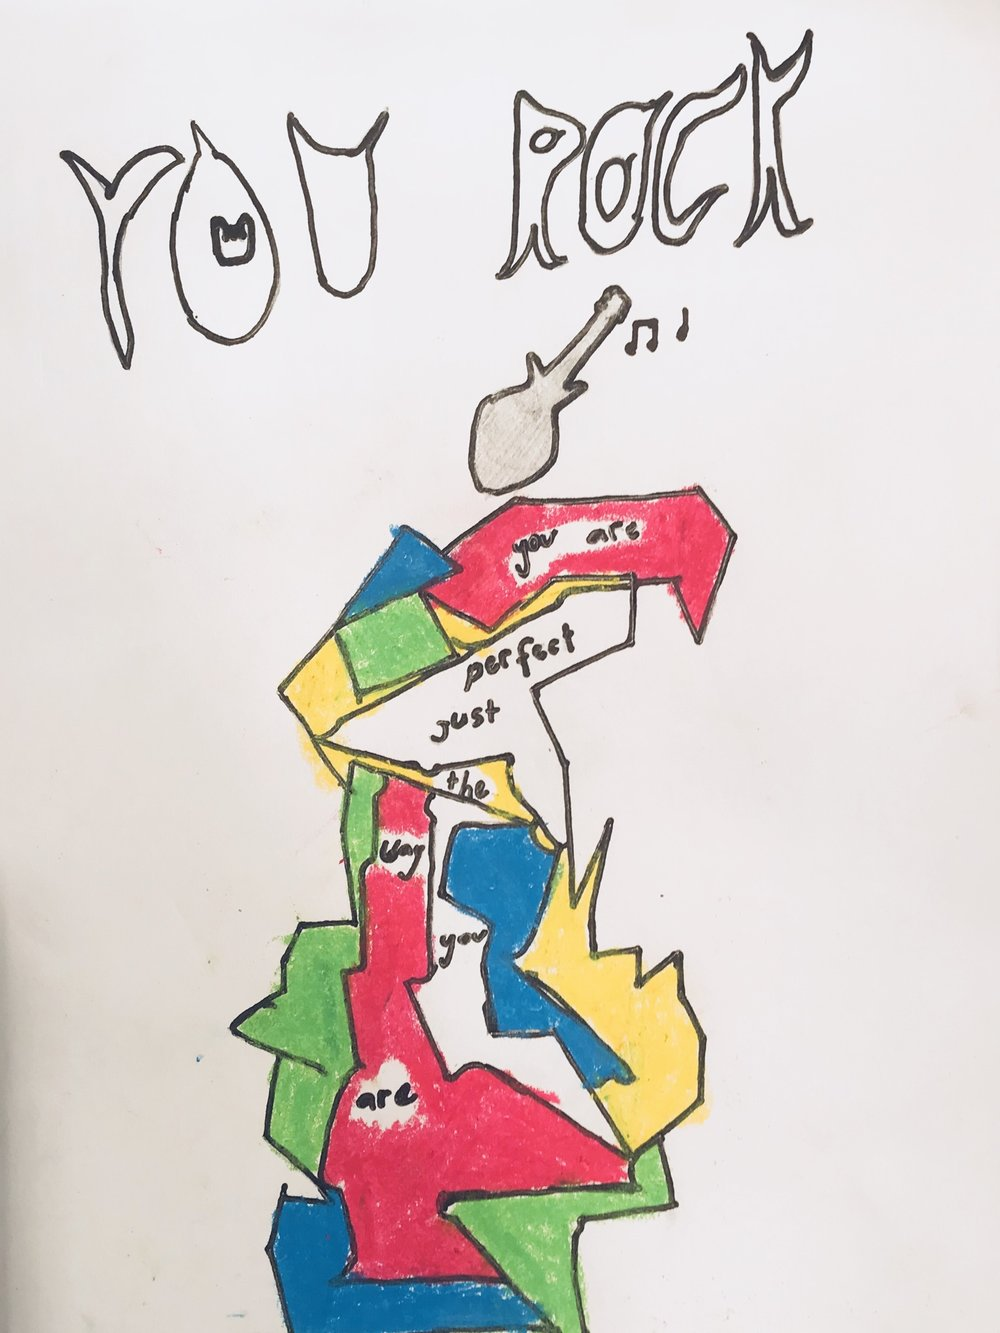 020 - YOU ROCK by Lydia Jeremijenko (age 9) in Gold Coast, Australia